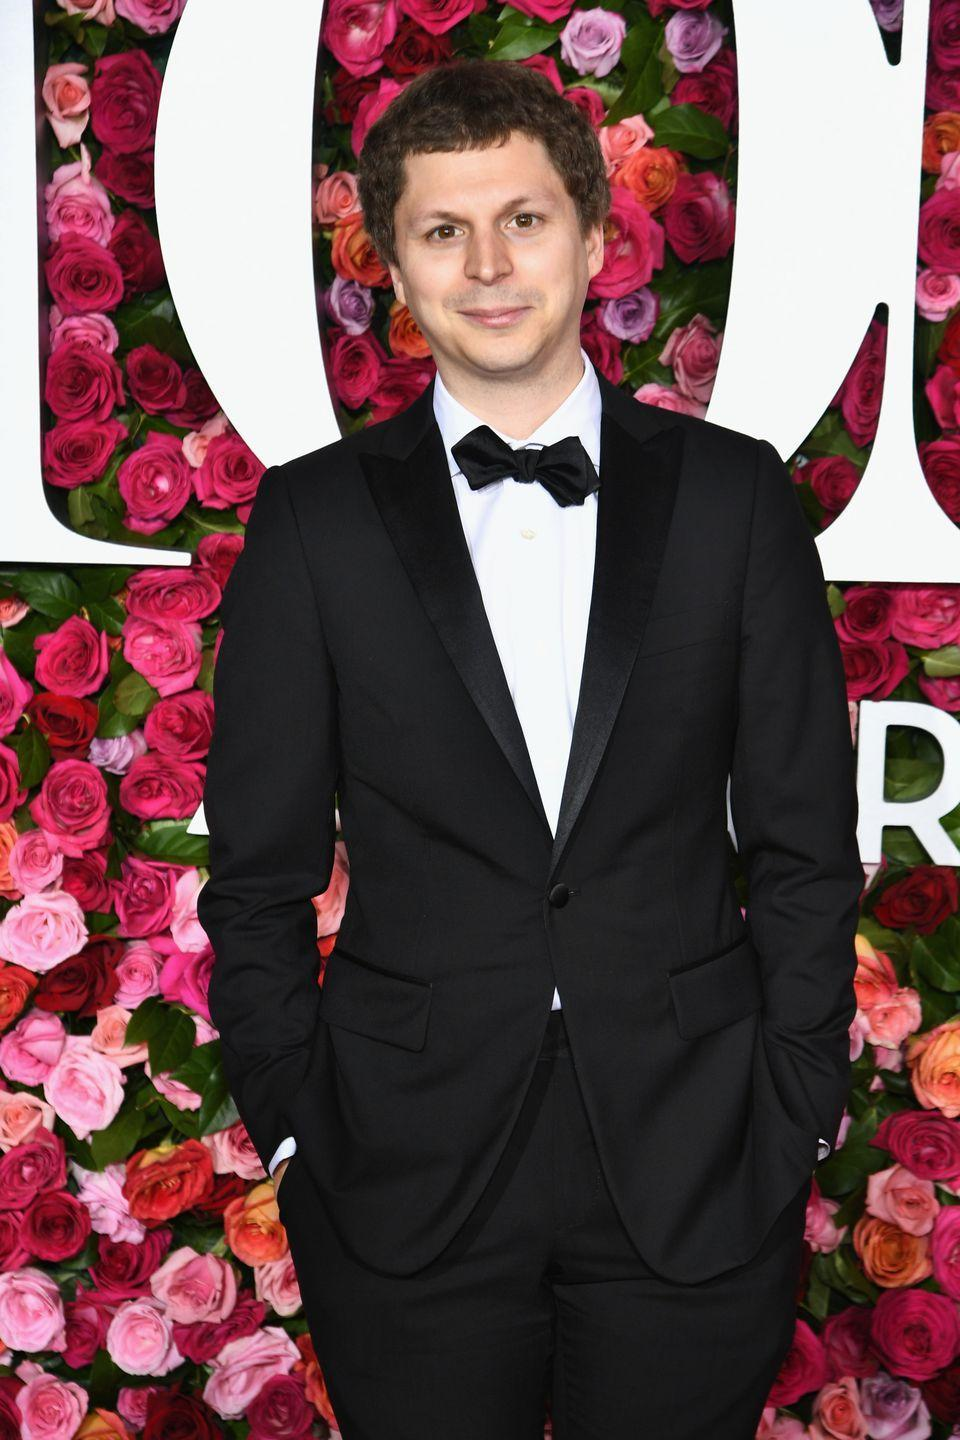 """<p>Michael Cera stole people's hearts in <em>Juno</em>, but the actor is also a <a href=""""https://open.spotify.com/artist/4xXQxNcBCtsaz6Gw1IblE3?si=QH3yBD4sS-yr7Tg3zIXFOA"""" rel=""""nofollow noopener"""" target=""""_blank"""" data-ylk=""""slk:bassist and singer"""" class=""""link rapid-noclick-resp"""">bassist and singer</a>. Michael is one part of indie band The Long Goodbye and toured with Mister Heavenly for Passion Pit. He released his debut album, <em>True That</em>, via his verified Bandcamp in 2014 and also <a href=""""https://ew.com/article/2010/06/21/scott-pilgrim-soundtrack/"""" rel=""""nofollow noopener"""" target=""""_blank"""" data-ylk=""""slk:collaborated with Beck"""" class=""""link rapid-noclick-resp"""">collaborated with Beck</a> on the iconic <em>Scott Pilgrim vs. The World</em> soundtrack. NBD.</p>"""